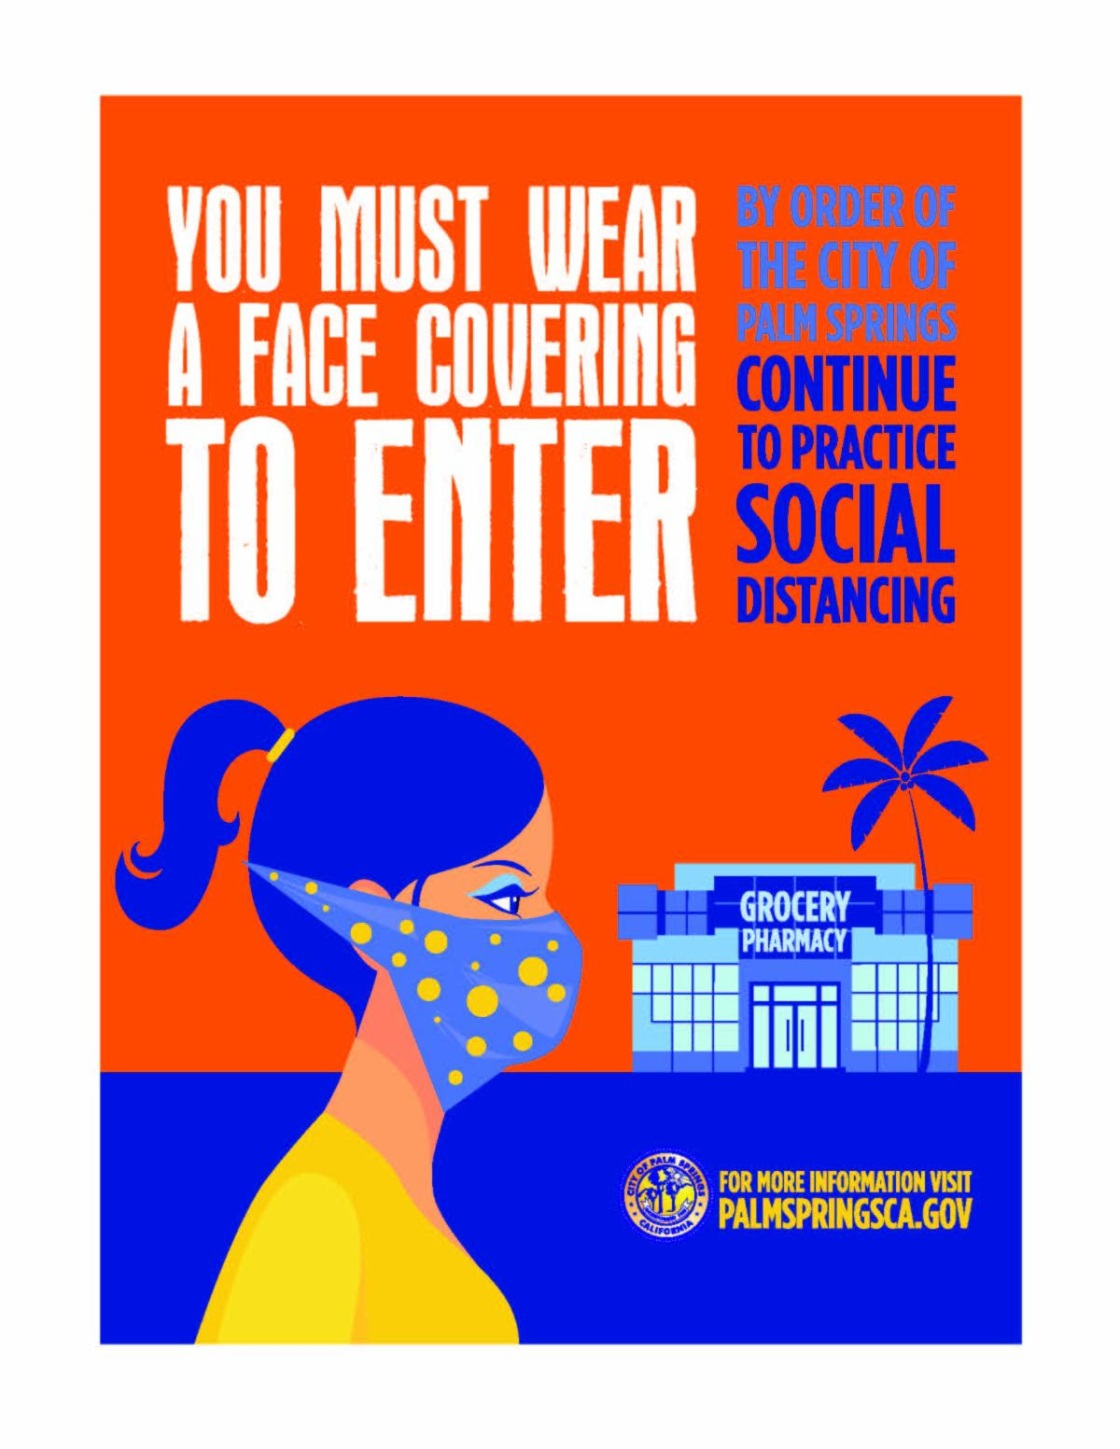 Palm Springs Strengthens Face Covering Order; Citations Can Be Issued